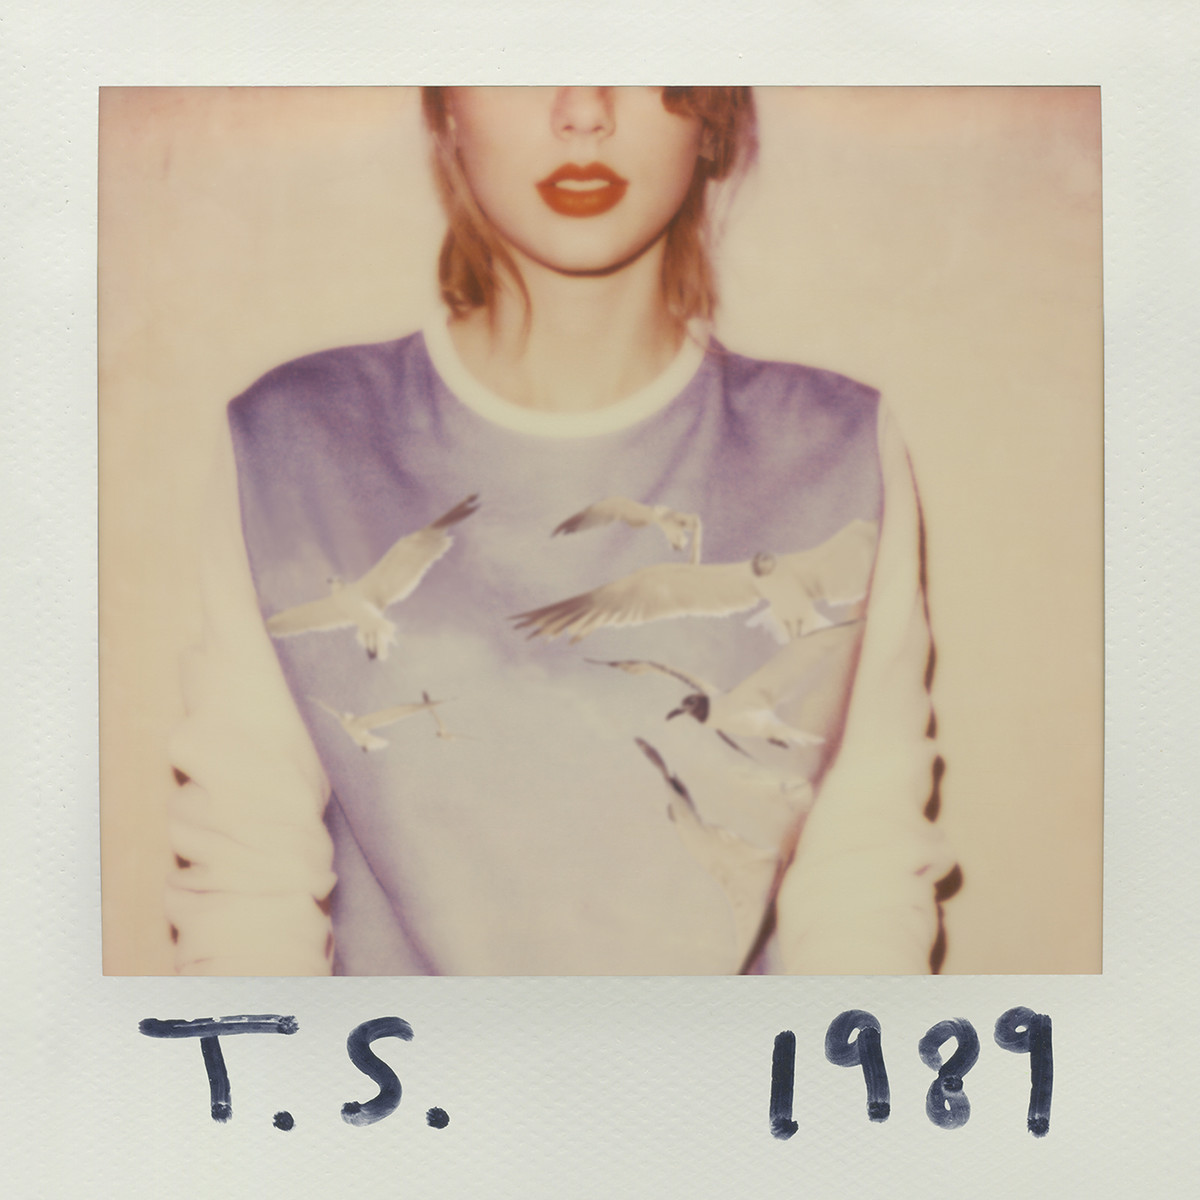 """""""1989"""" Album Cover by Taylor Swift (Big Machine, 2014)"""